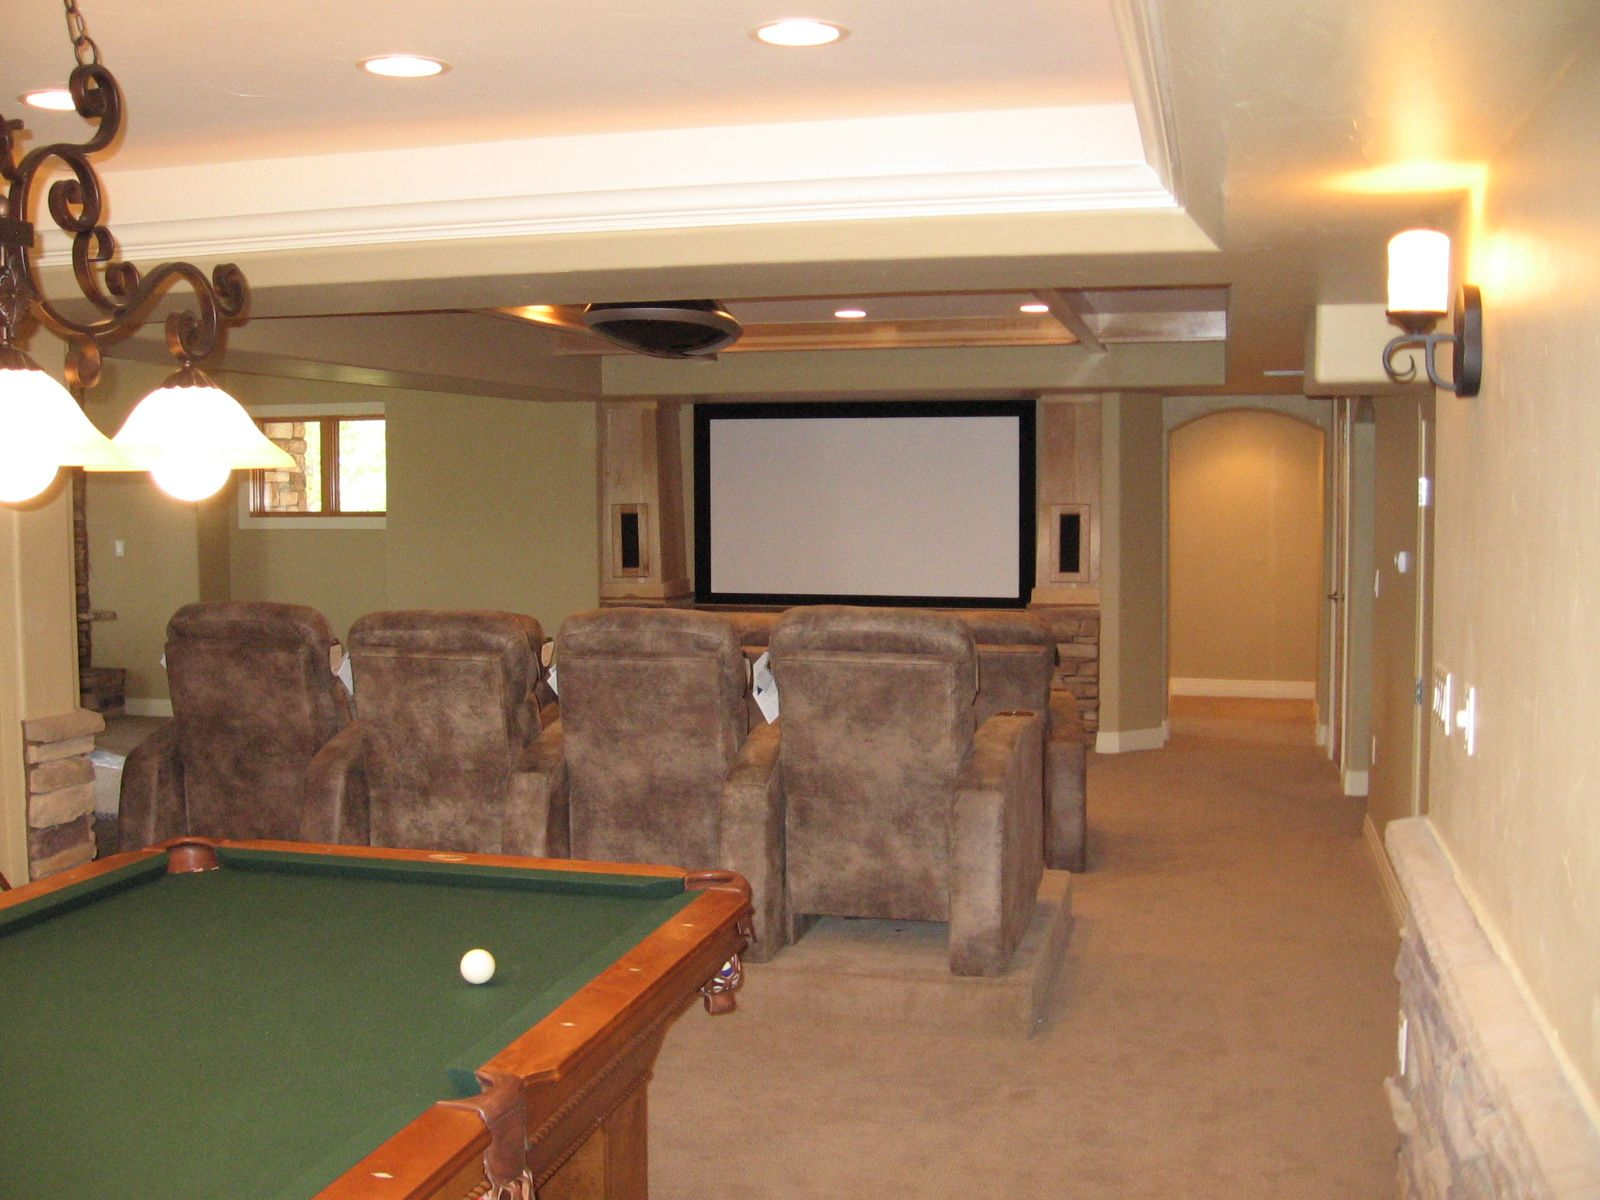 Finished basement ideas basement design basement for Finished basement designs